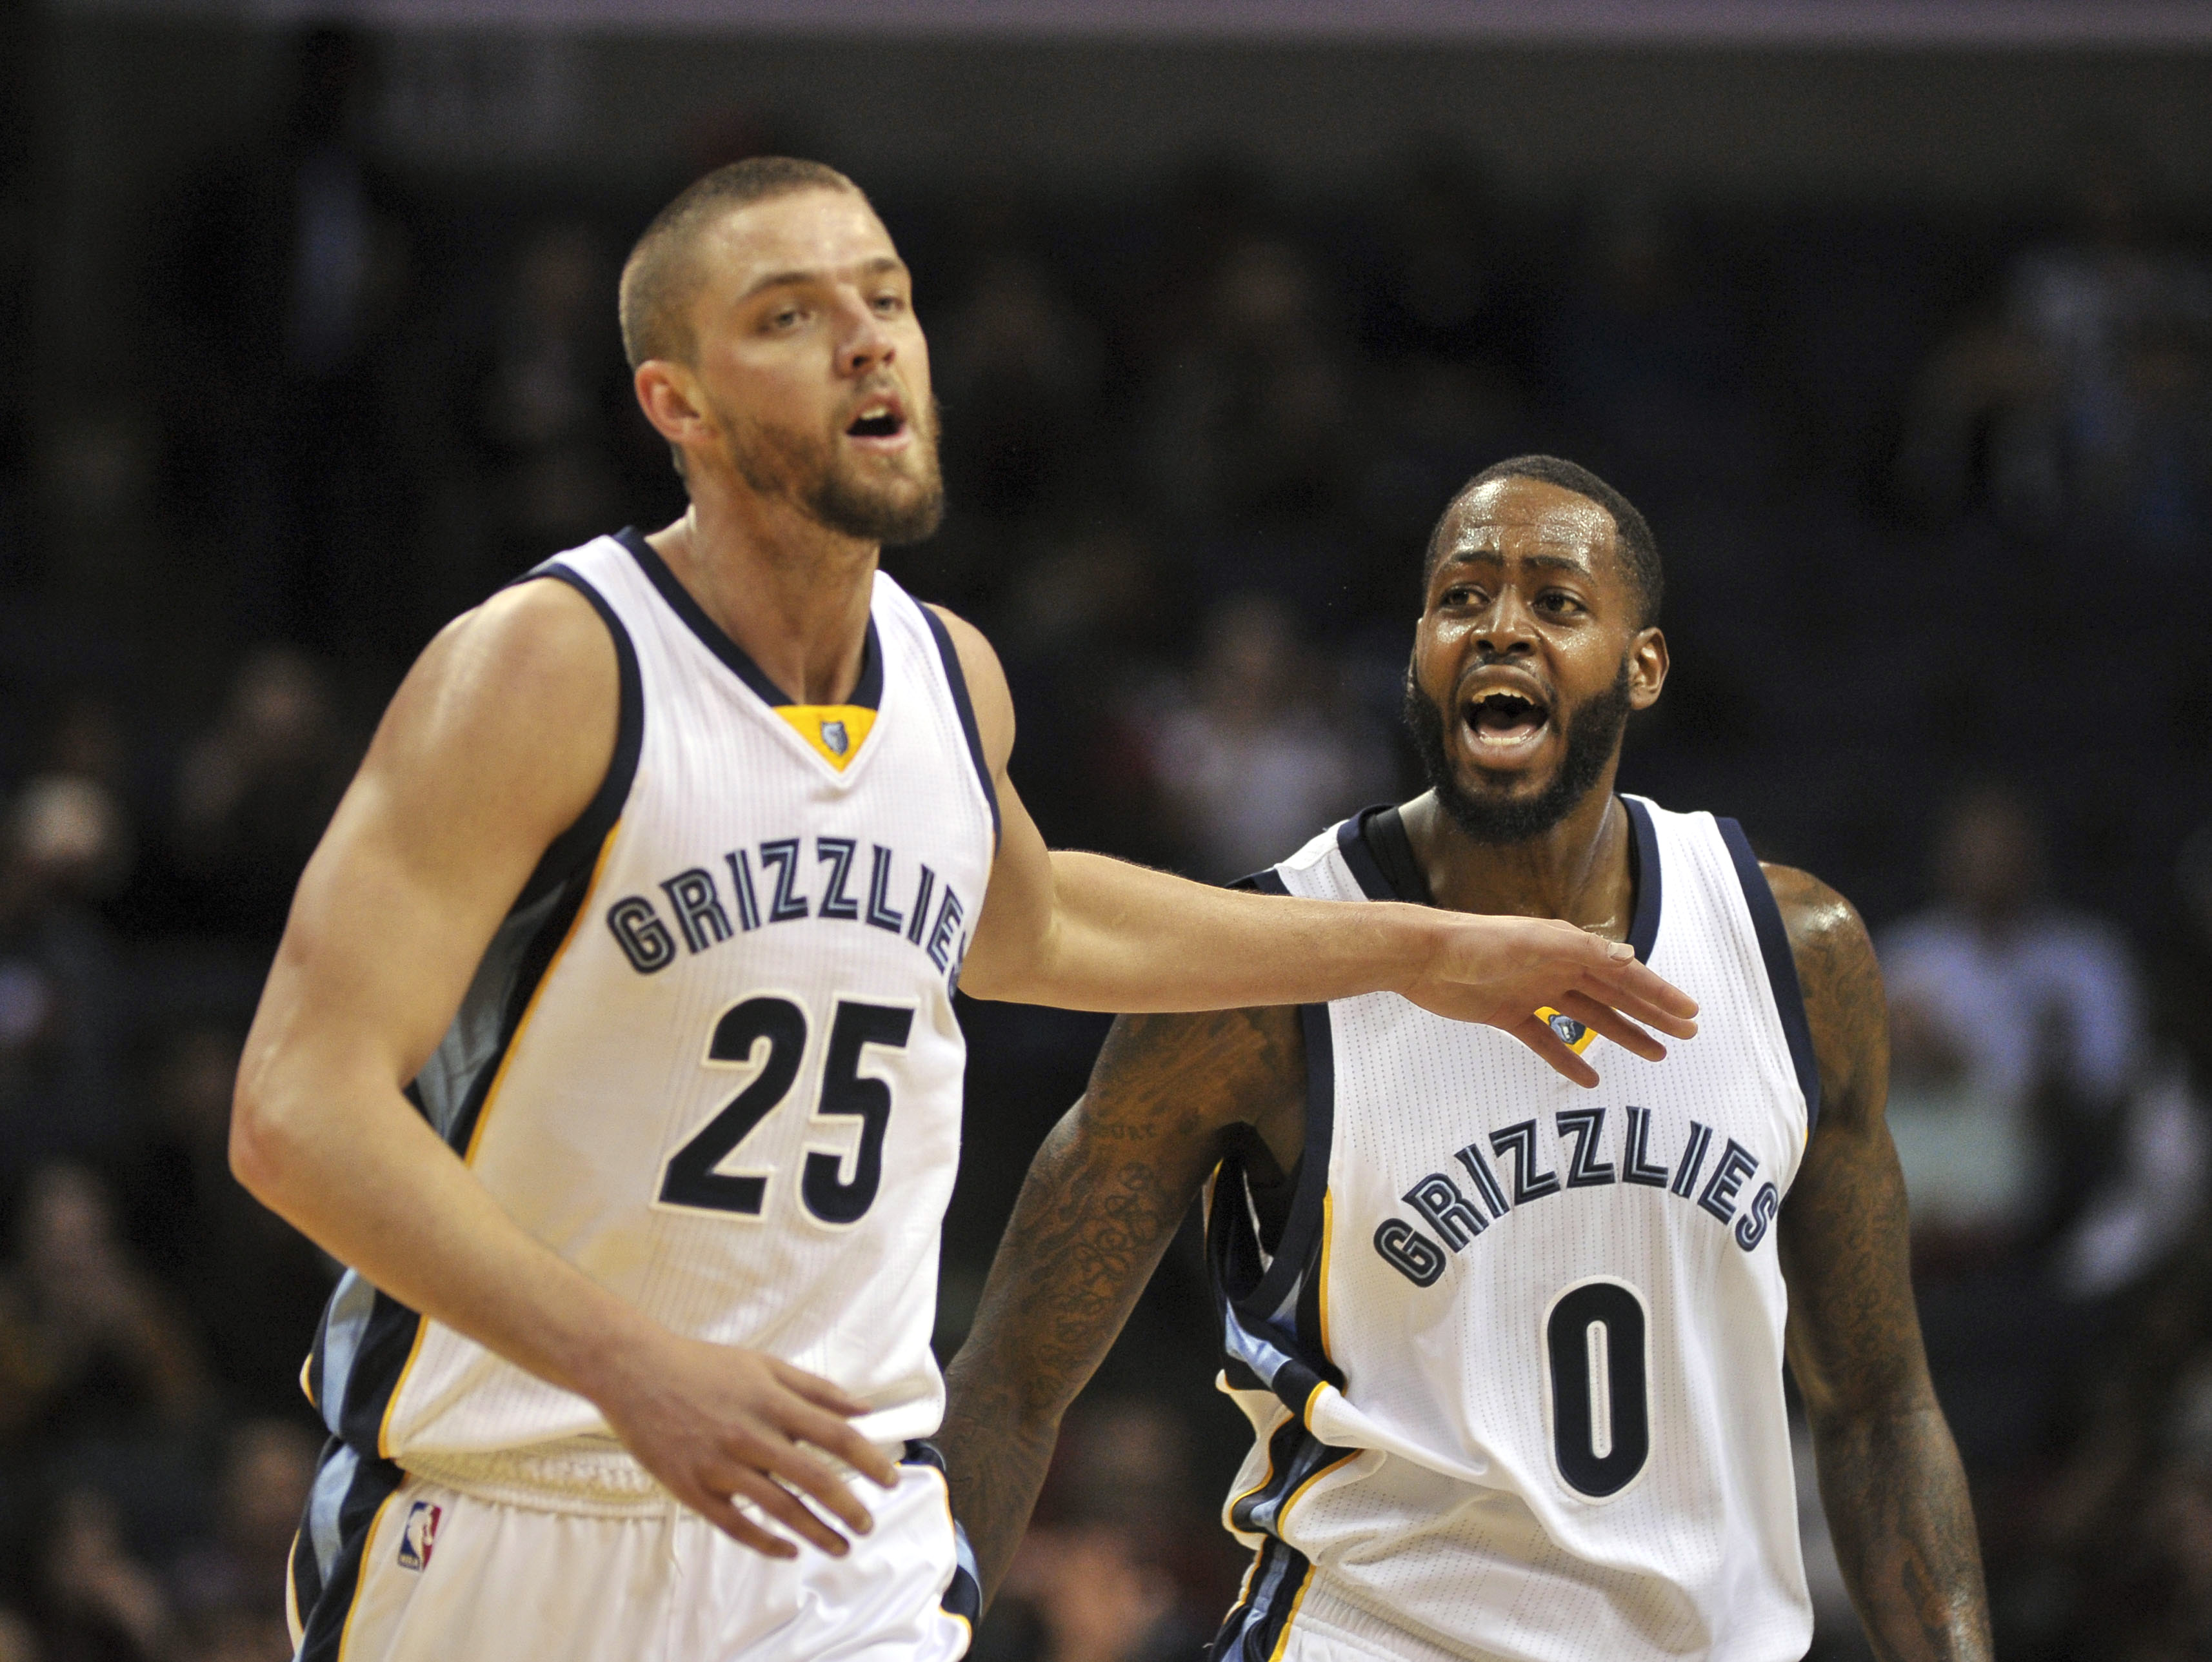 Feb 8, 2017; Memphis, TN, USA; Memphis Grizzlies forward Chandler Parsons (25) and Memphis Grizzlies forward JaMychal Green (0) celebrate during the first half against the Phoenix Suns at FedExForum. Mandatory Credit: Justin Ford-USA TODAY Sports